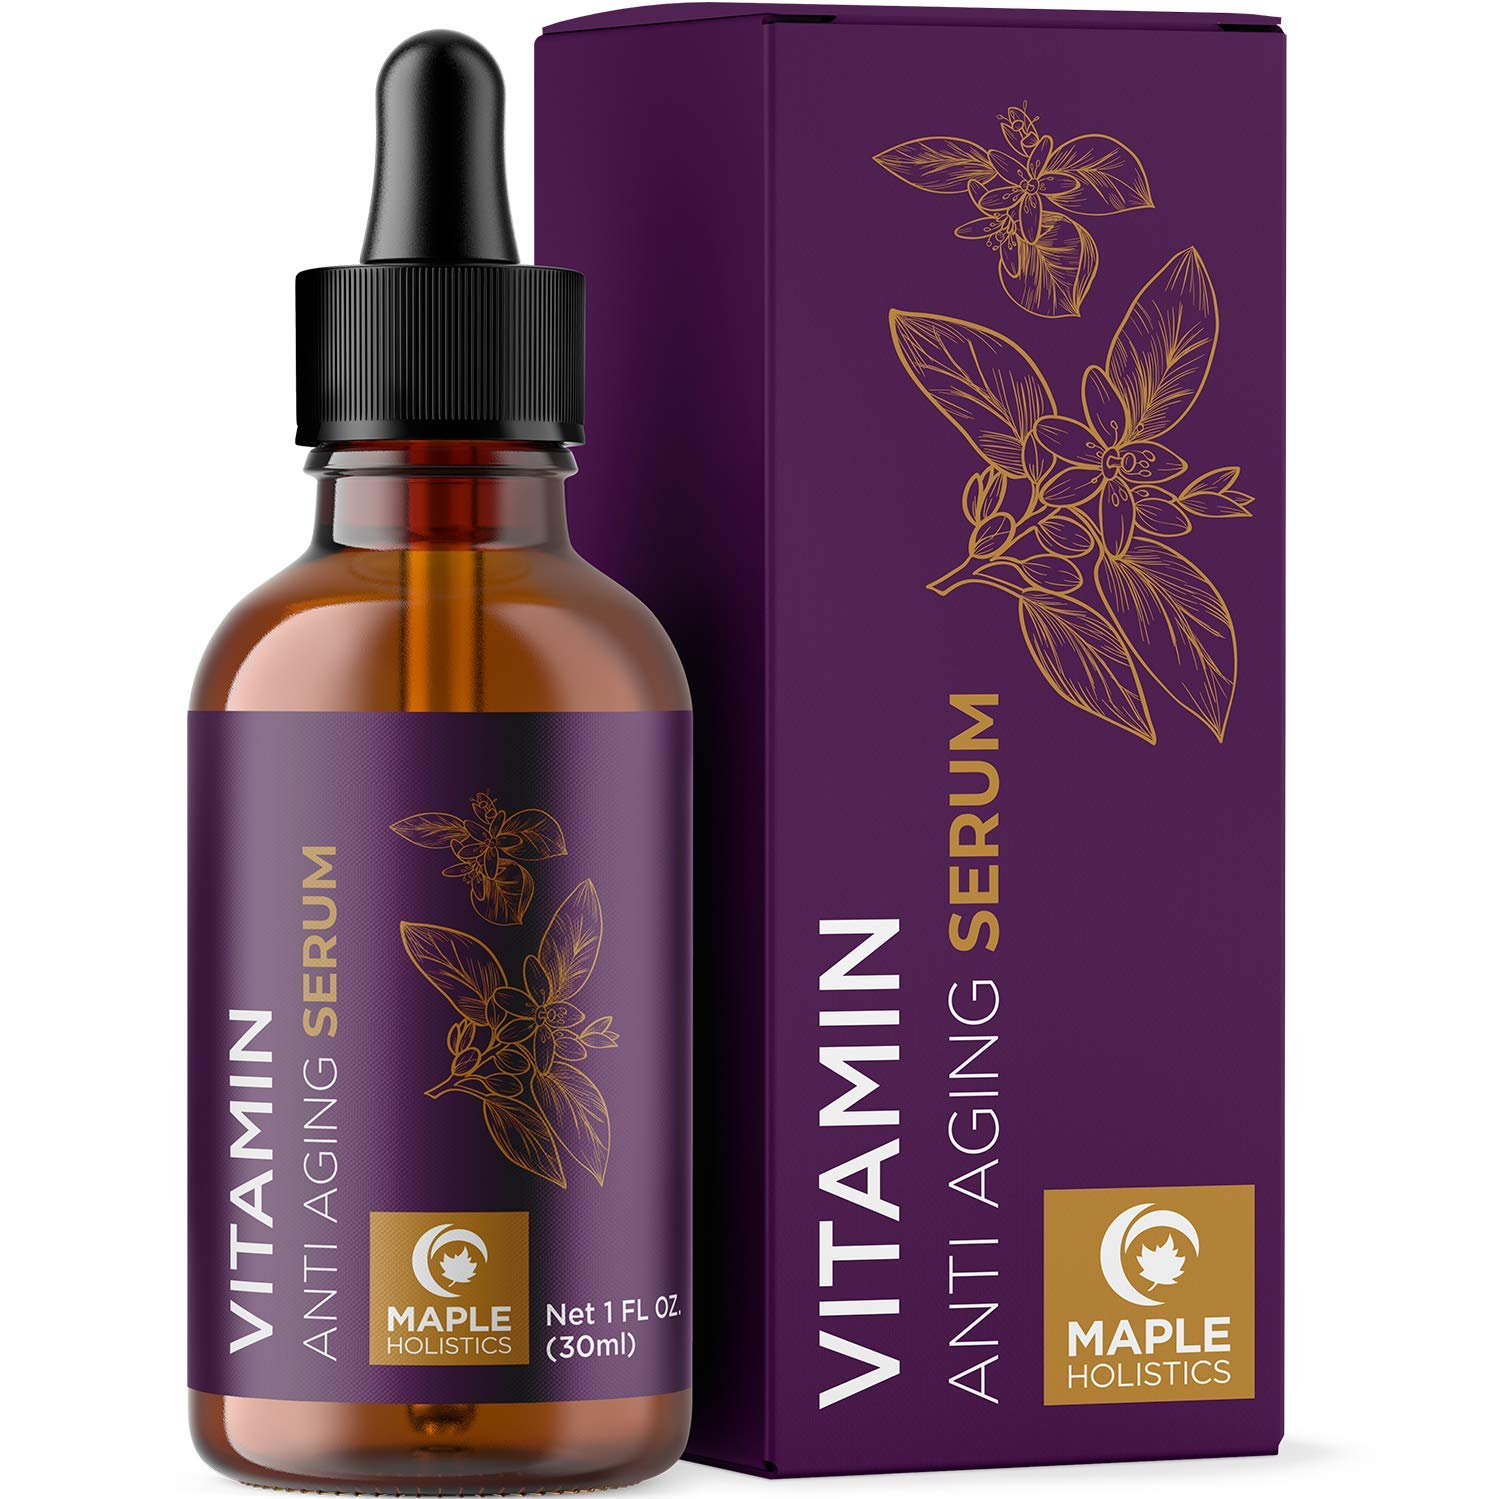 Vitamin C Hyaluronic Acid Serum - Vitamin C Serum for Face with Hyaluronic Acid Pure Jojoba Oil and Natural Vitamin E Oil for Skin Care - Pure Hyaluronic Acid Serum for Face Moisturizer for Dry Skin